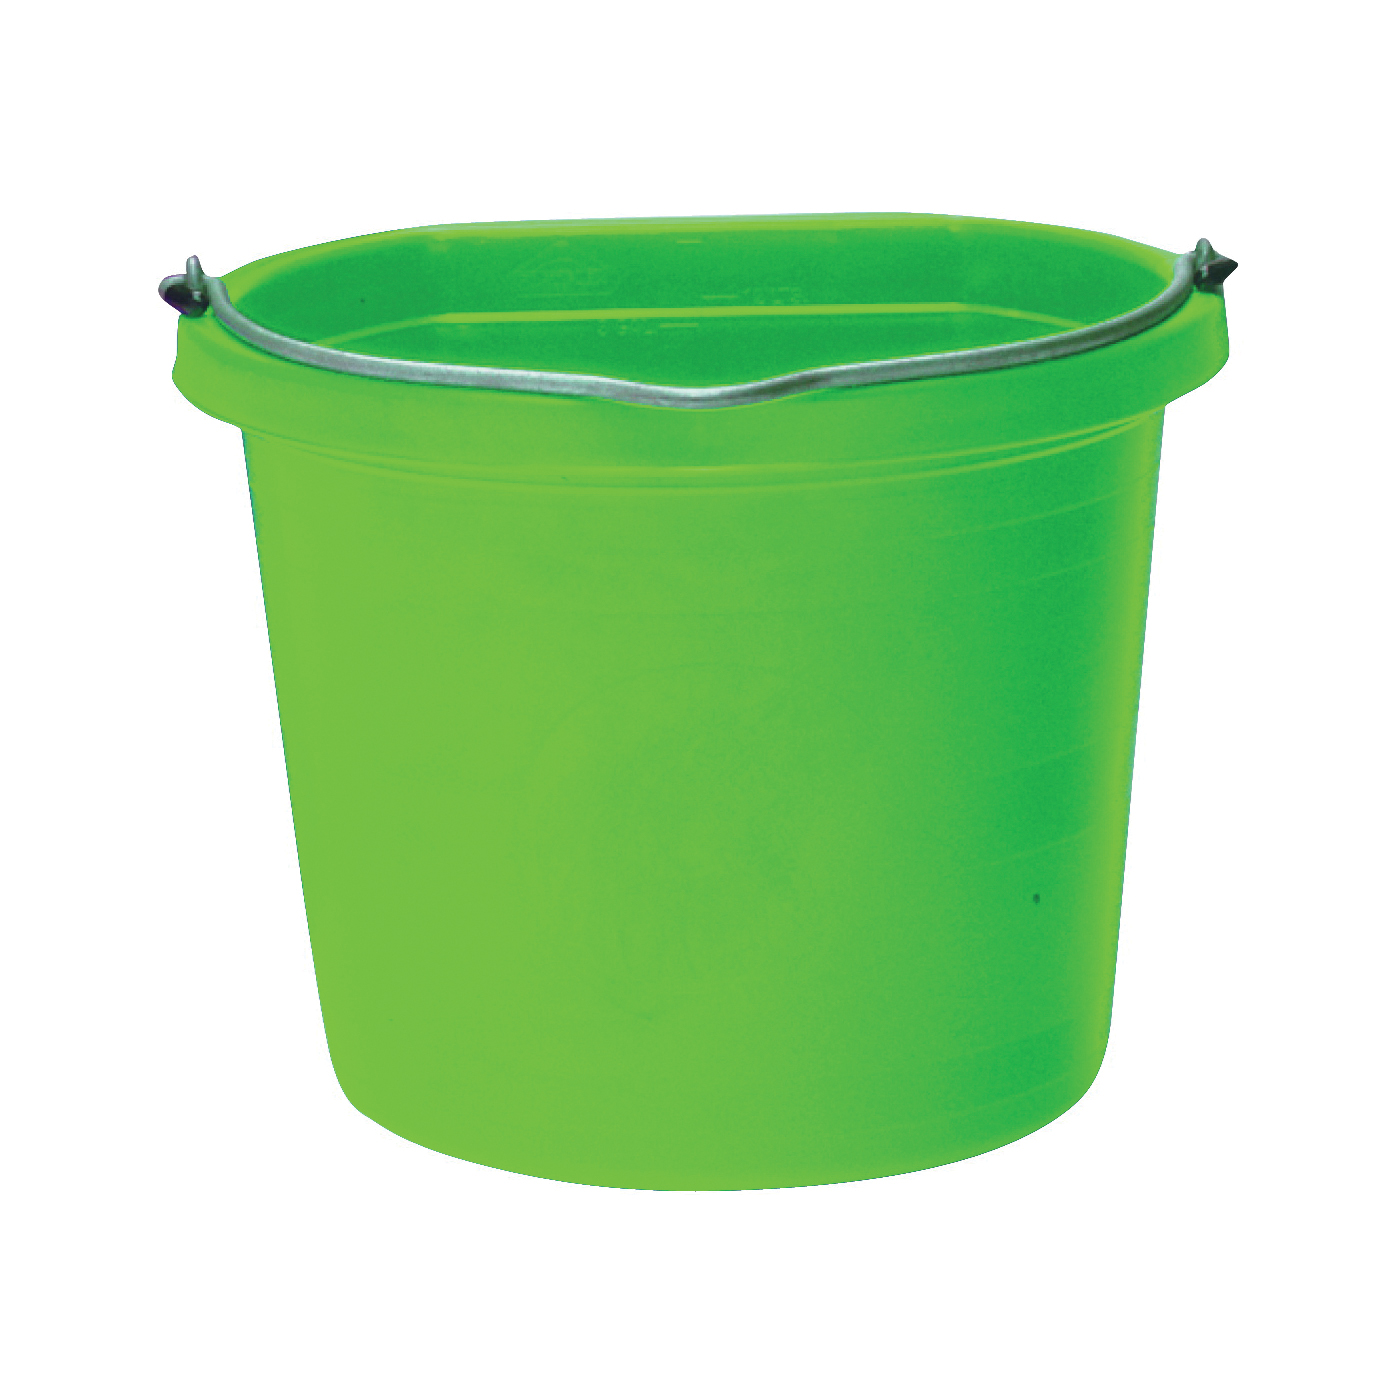 Picture of FORTEX-FORTIFLEX 1302043 Bucket, 20 qt Volume, 2-Compartment, Polyethylene Resin, Green